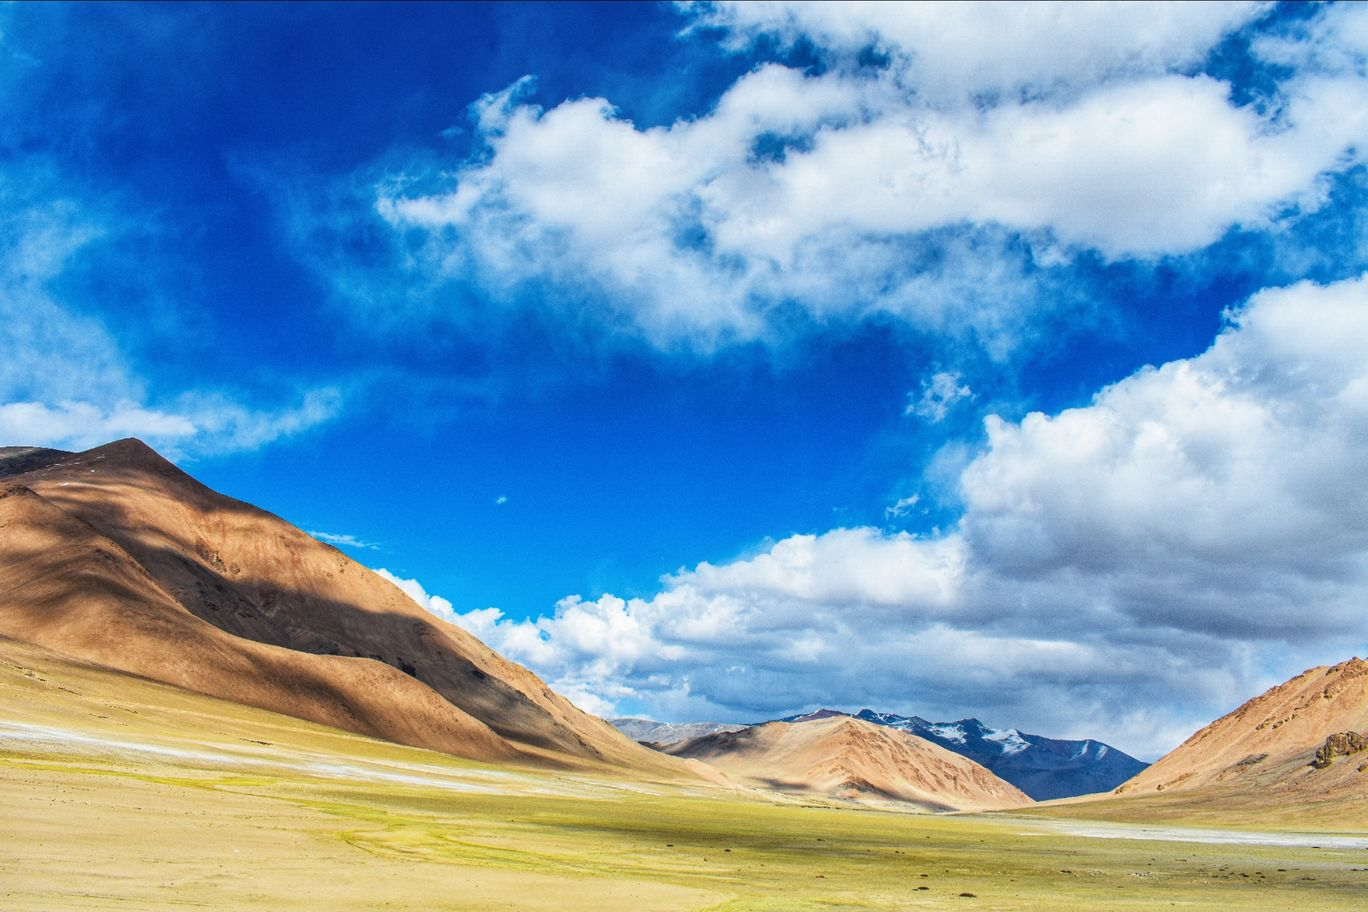 Photo of HEMIS NATIONAL PARK By HIGH ON LIFE